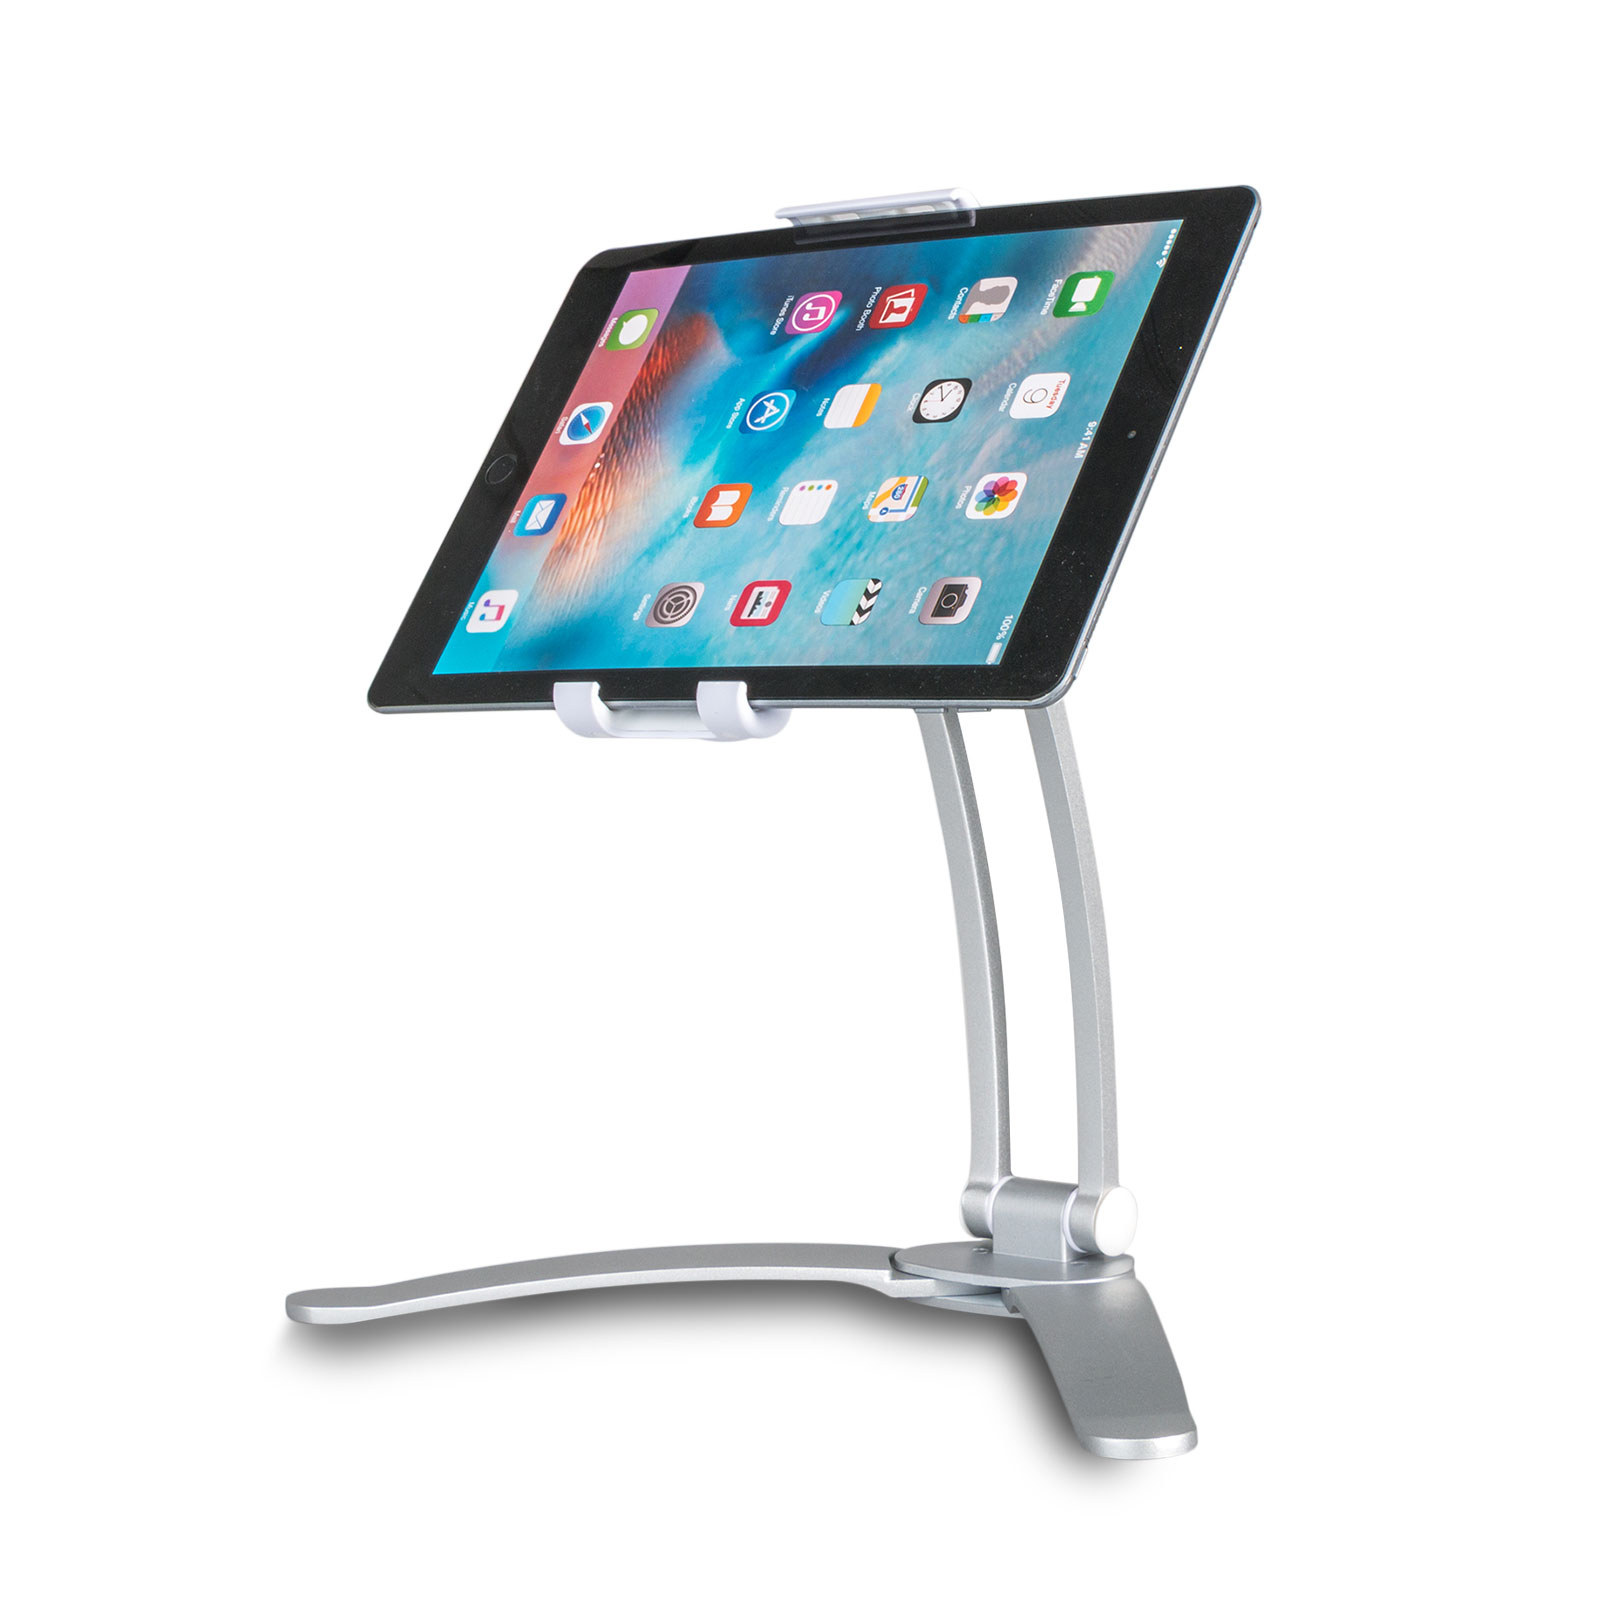 Tablet Mount Holder Kitchen Wall/desktop Recipe for 7 to 13 Inch ...